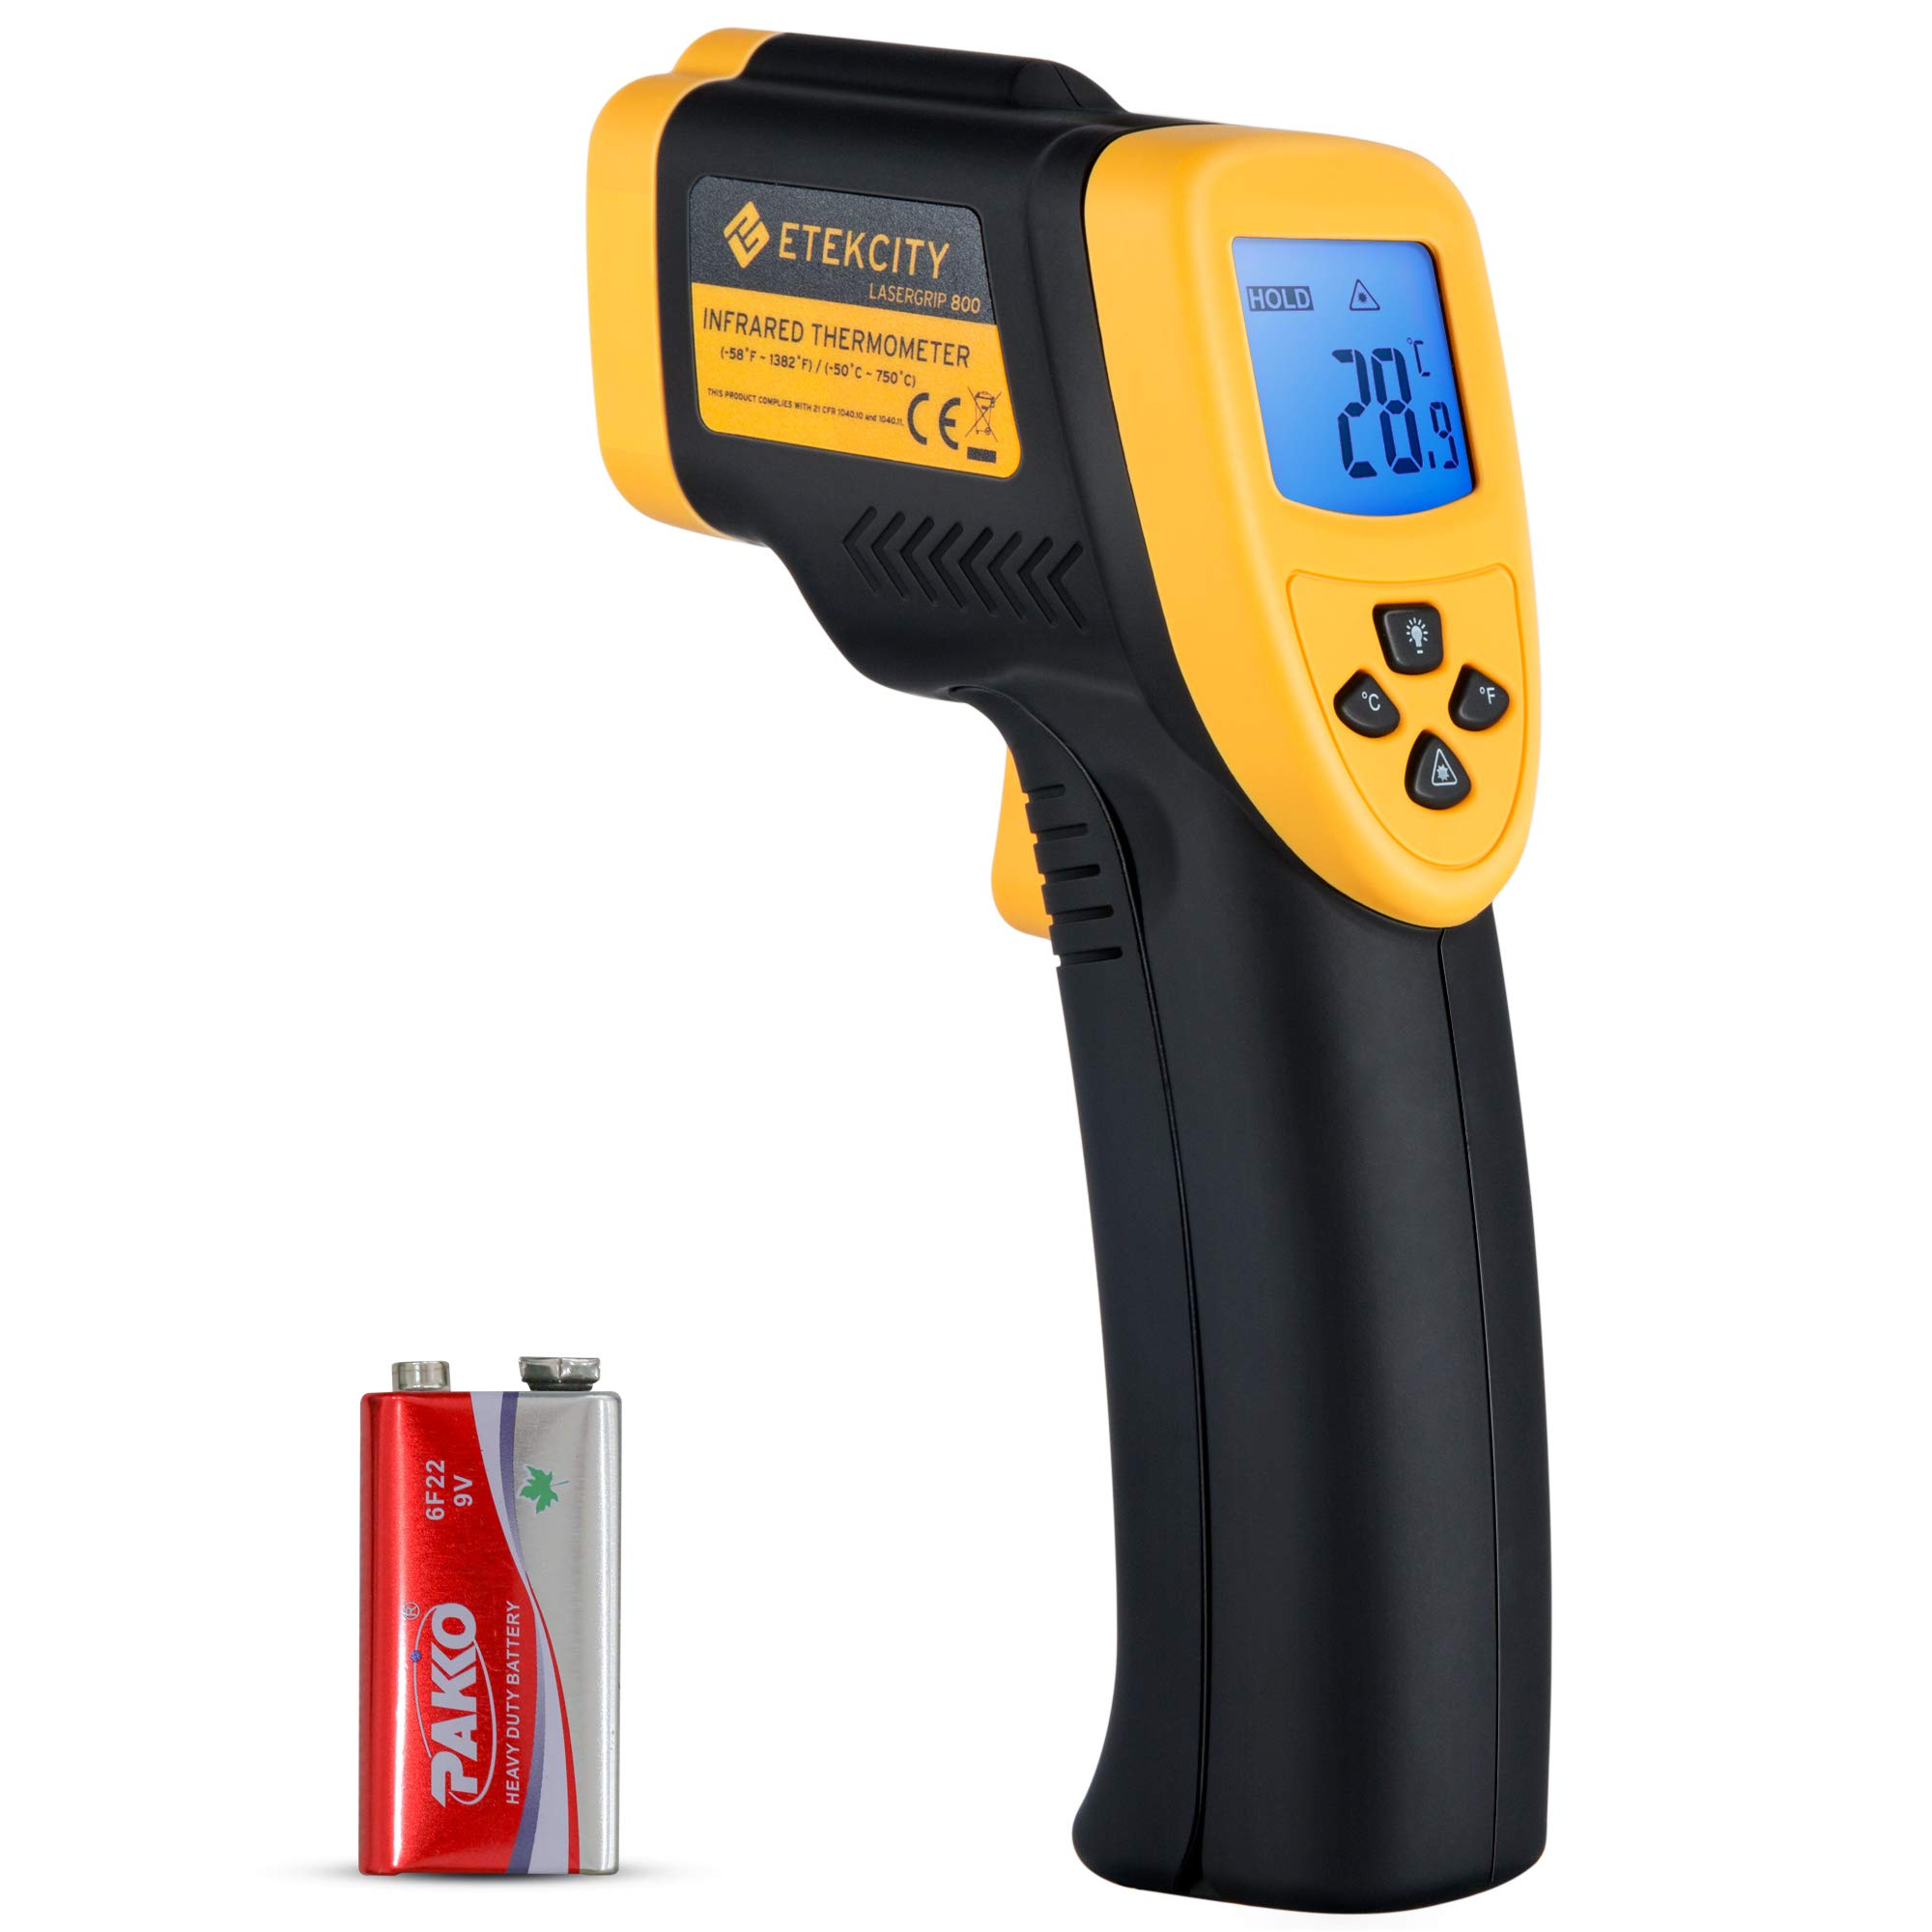 Etekcity Digital Infrared Thermometer Laser Temperature Gun Non-contact -58℉ ~ 1382℉ (-50℃ to 750℃), Instant Read Laser Thermometer for Kitchen Cooking BBQ Meat Food Refrigerator Oven Pool product image